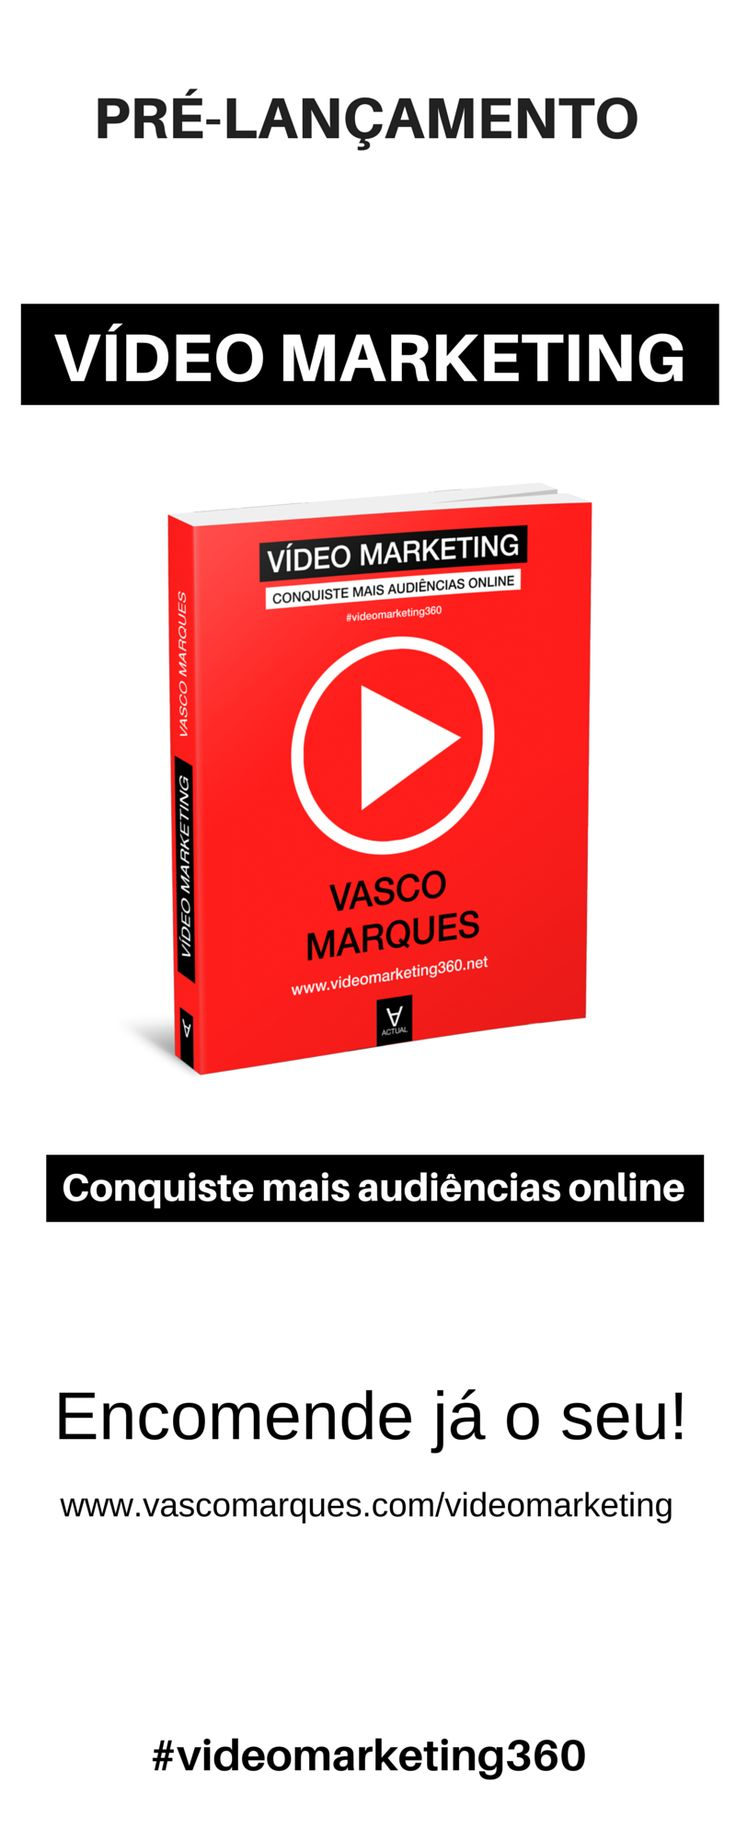 http://vascomarques.com/videomarketing